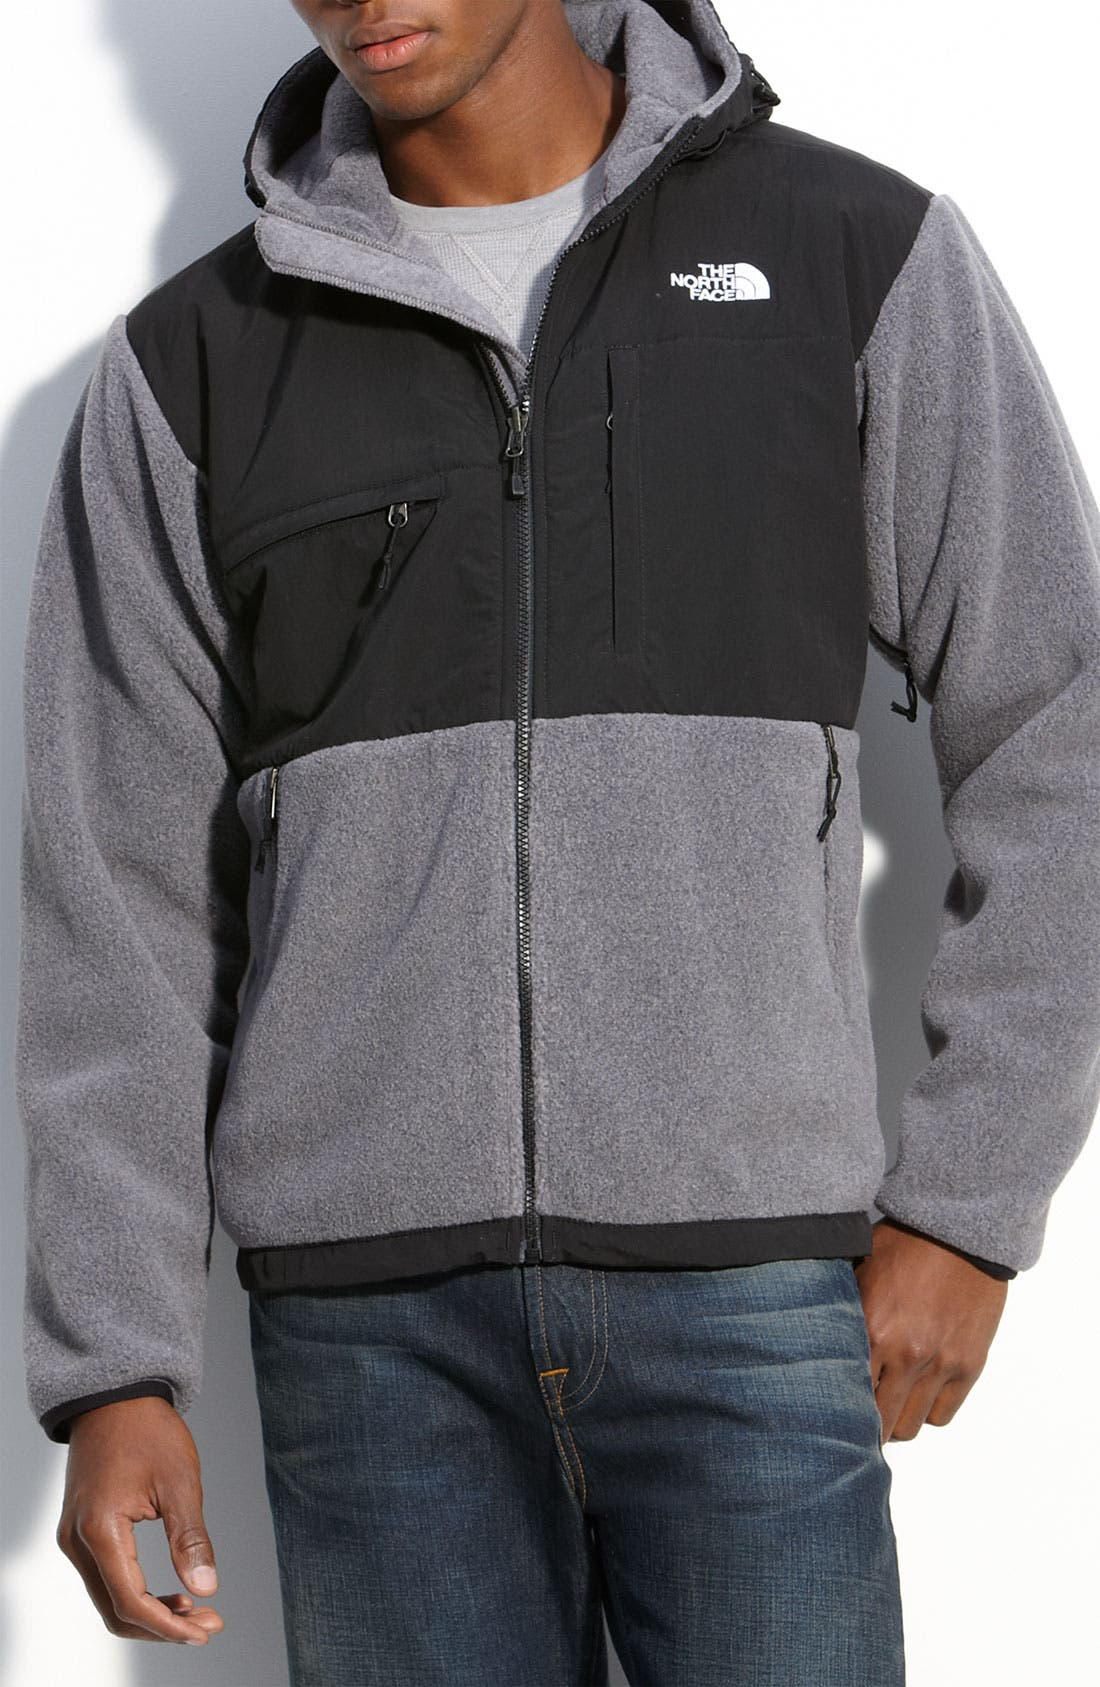 Main Image - The North Face 'Denali' Hooded Recycled Fleece Jacket